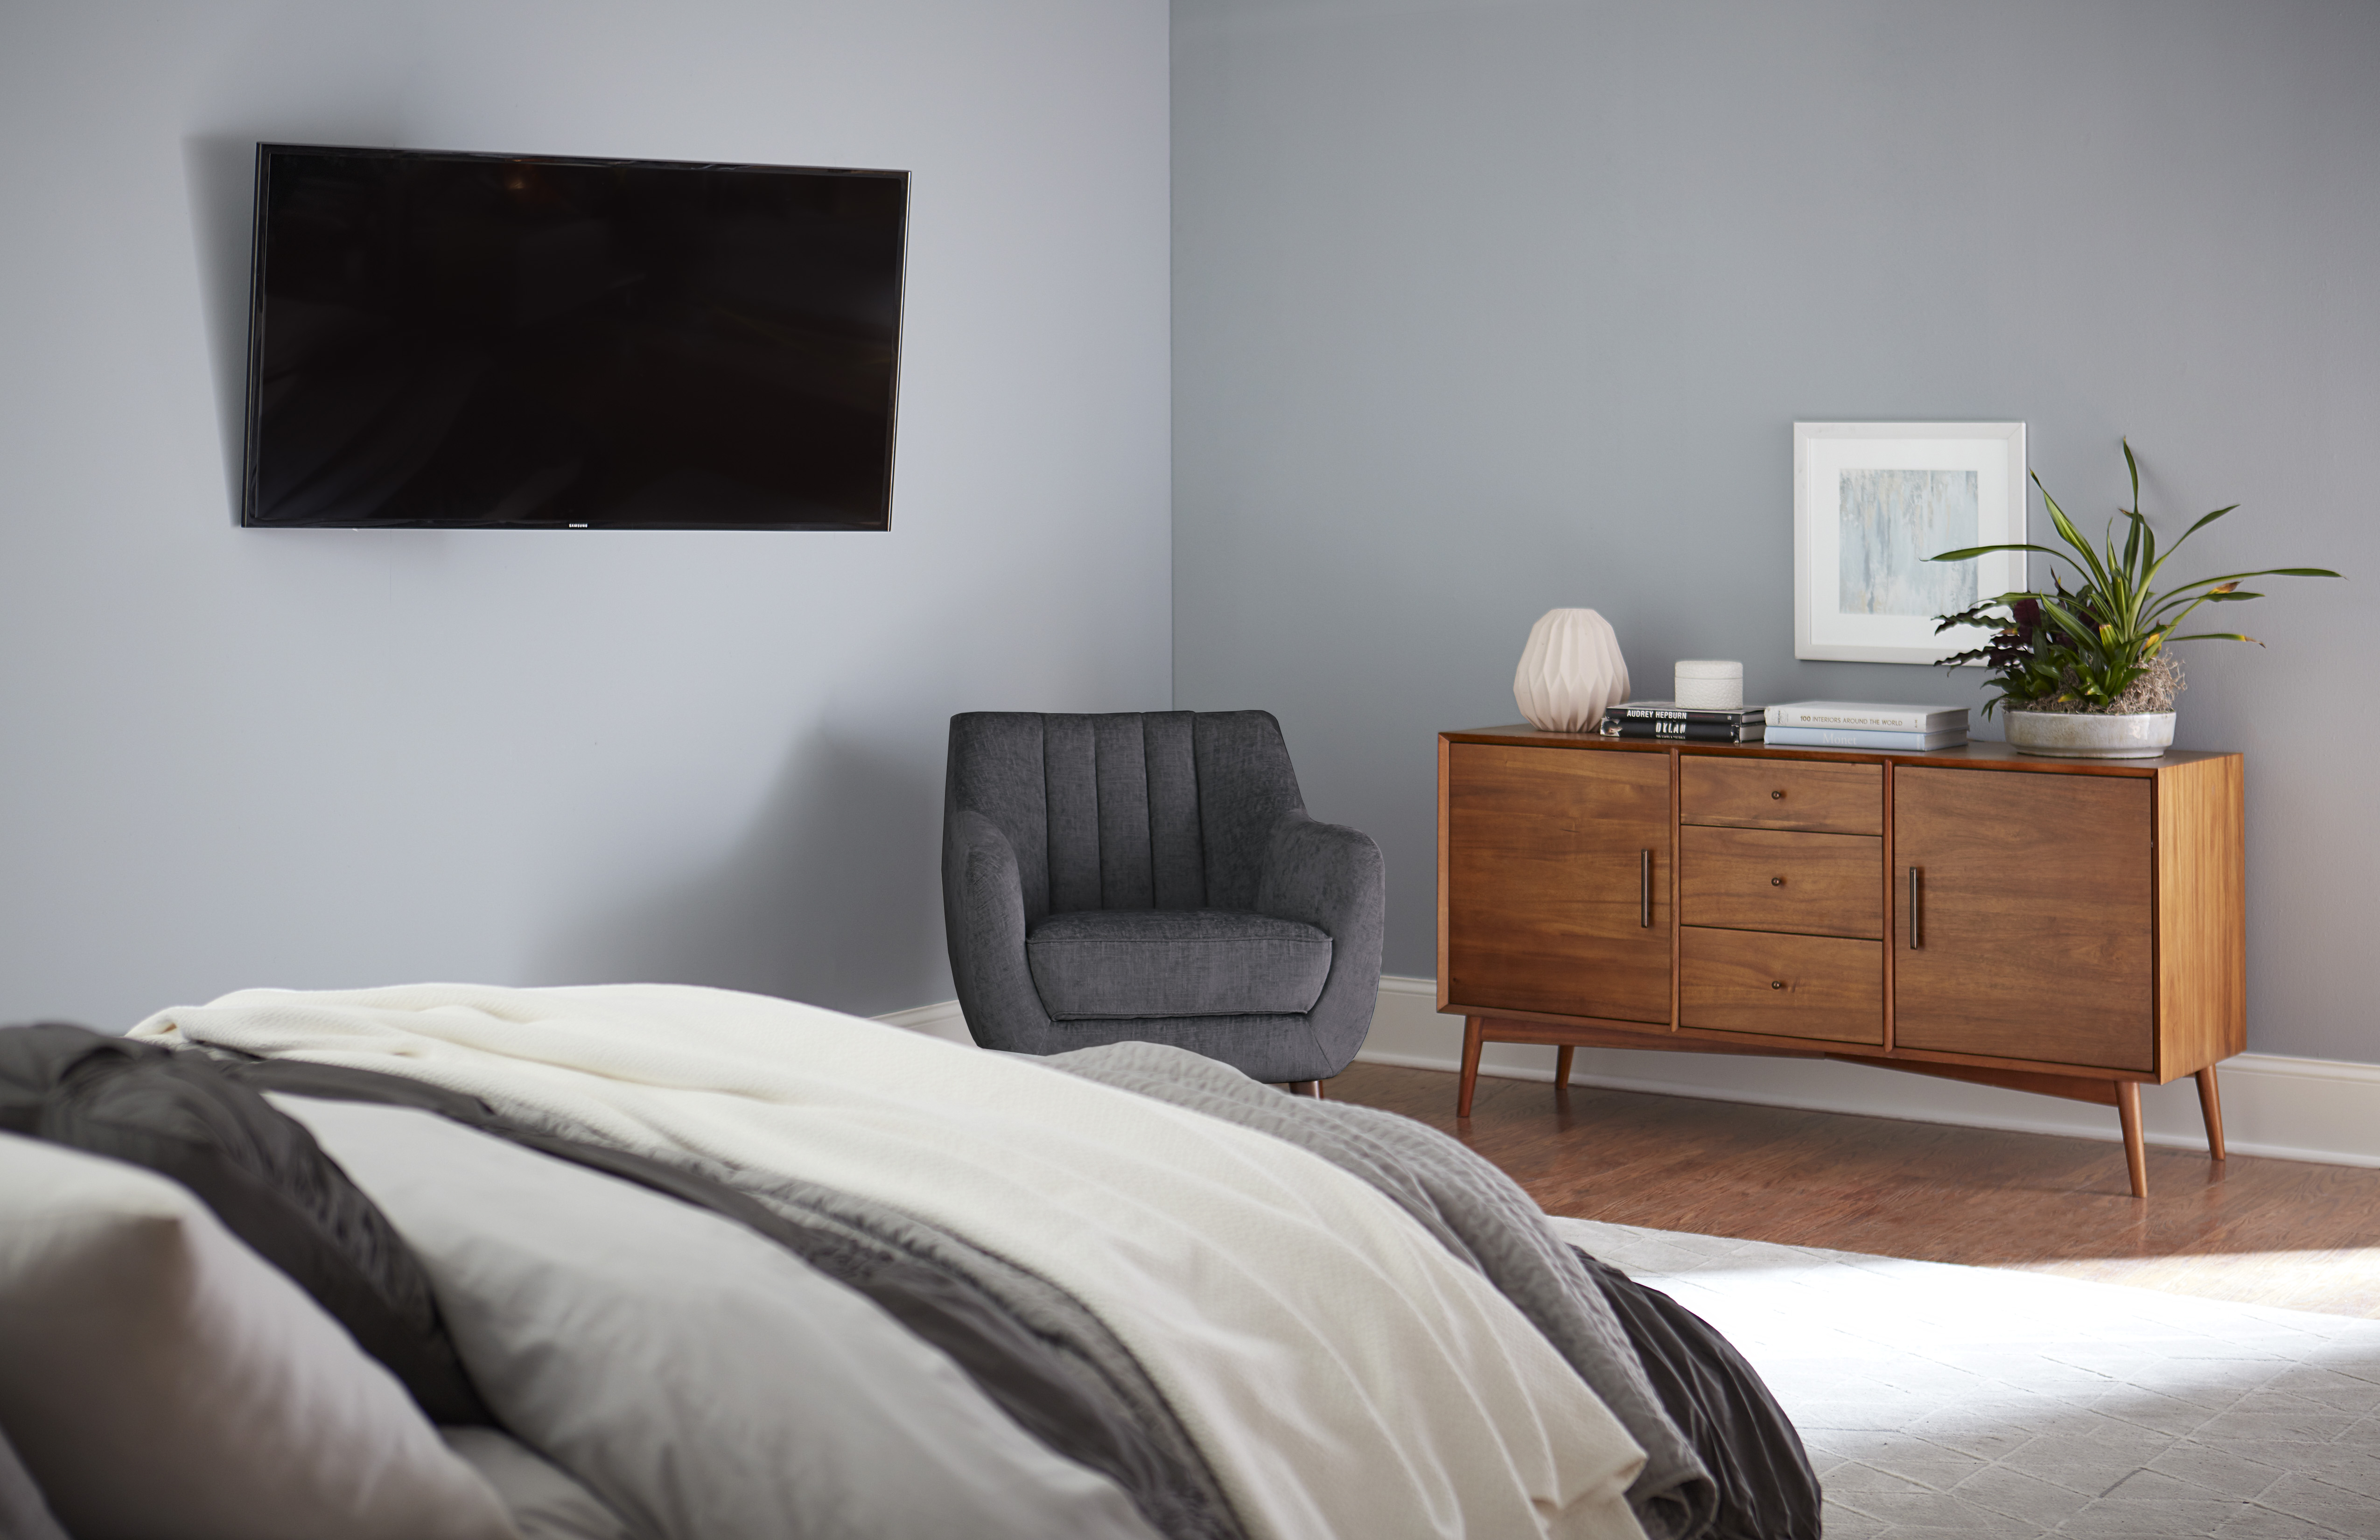 Tv In Bed : Griffin upholstered tv bed frame king size beds bed sizes tv bed